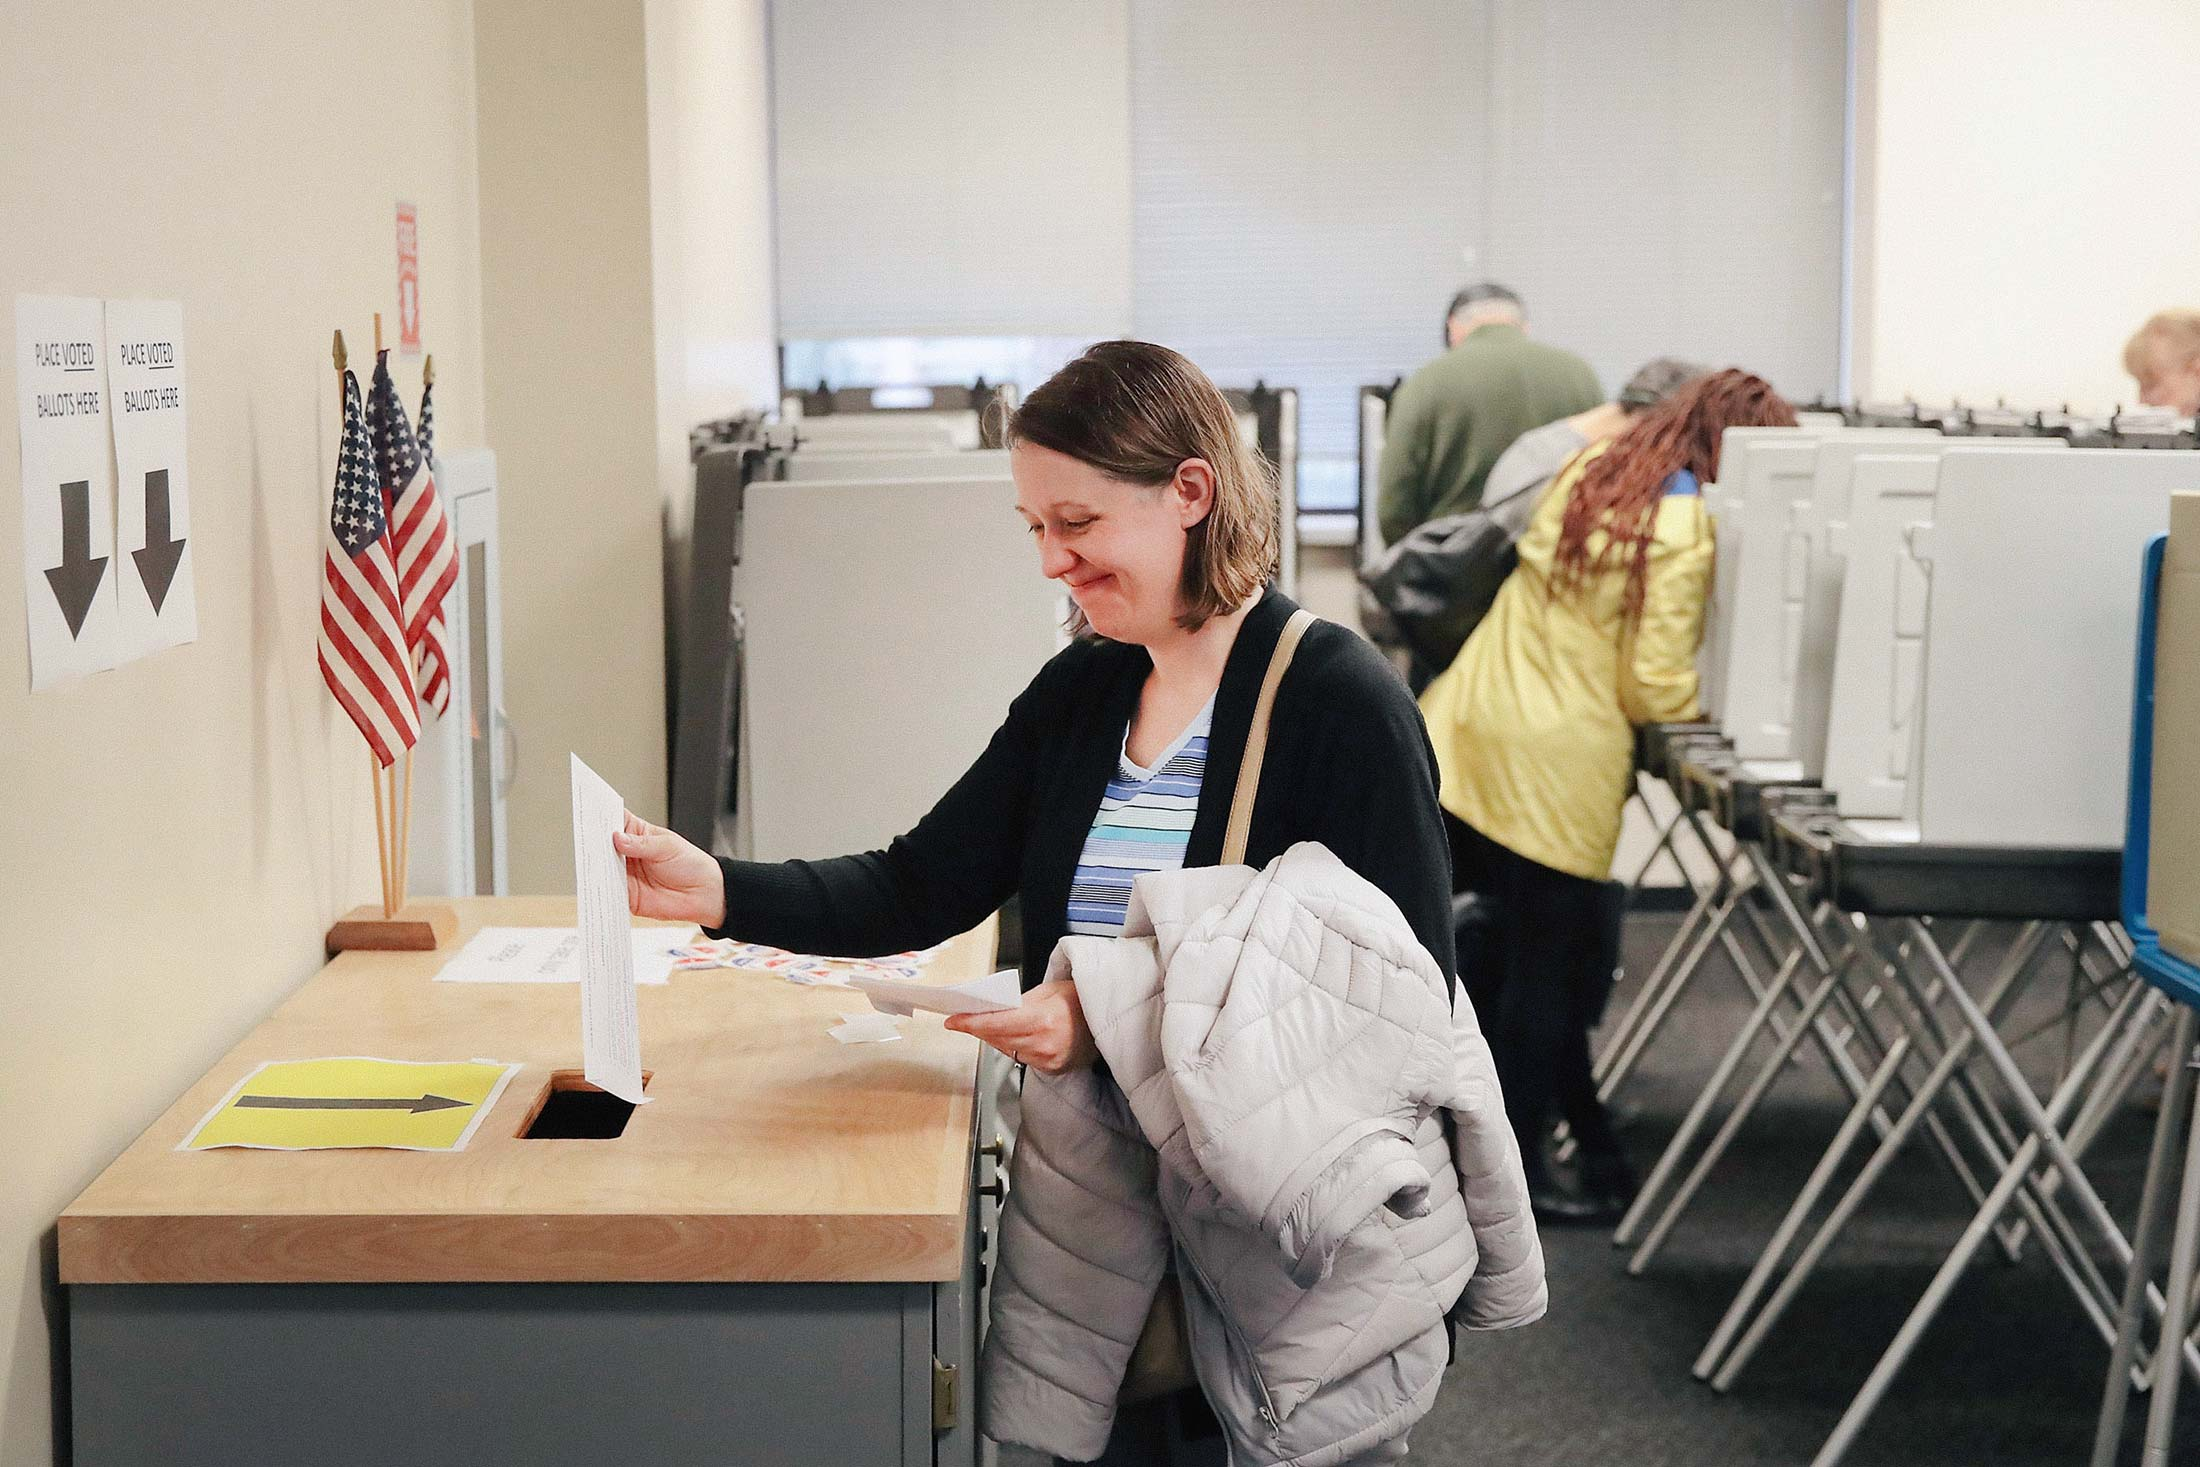 Voters cast ballots for the midterm elections at the Polk County Election Office